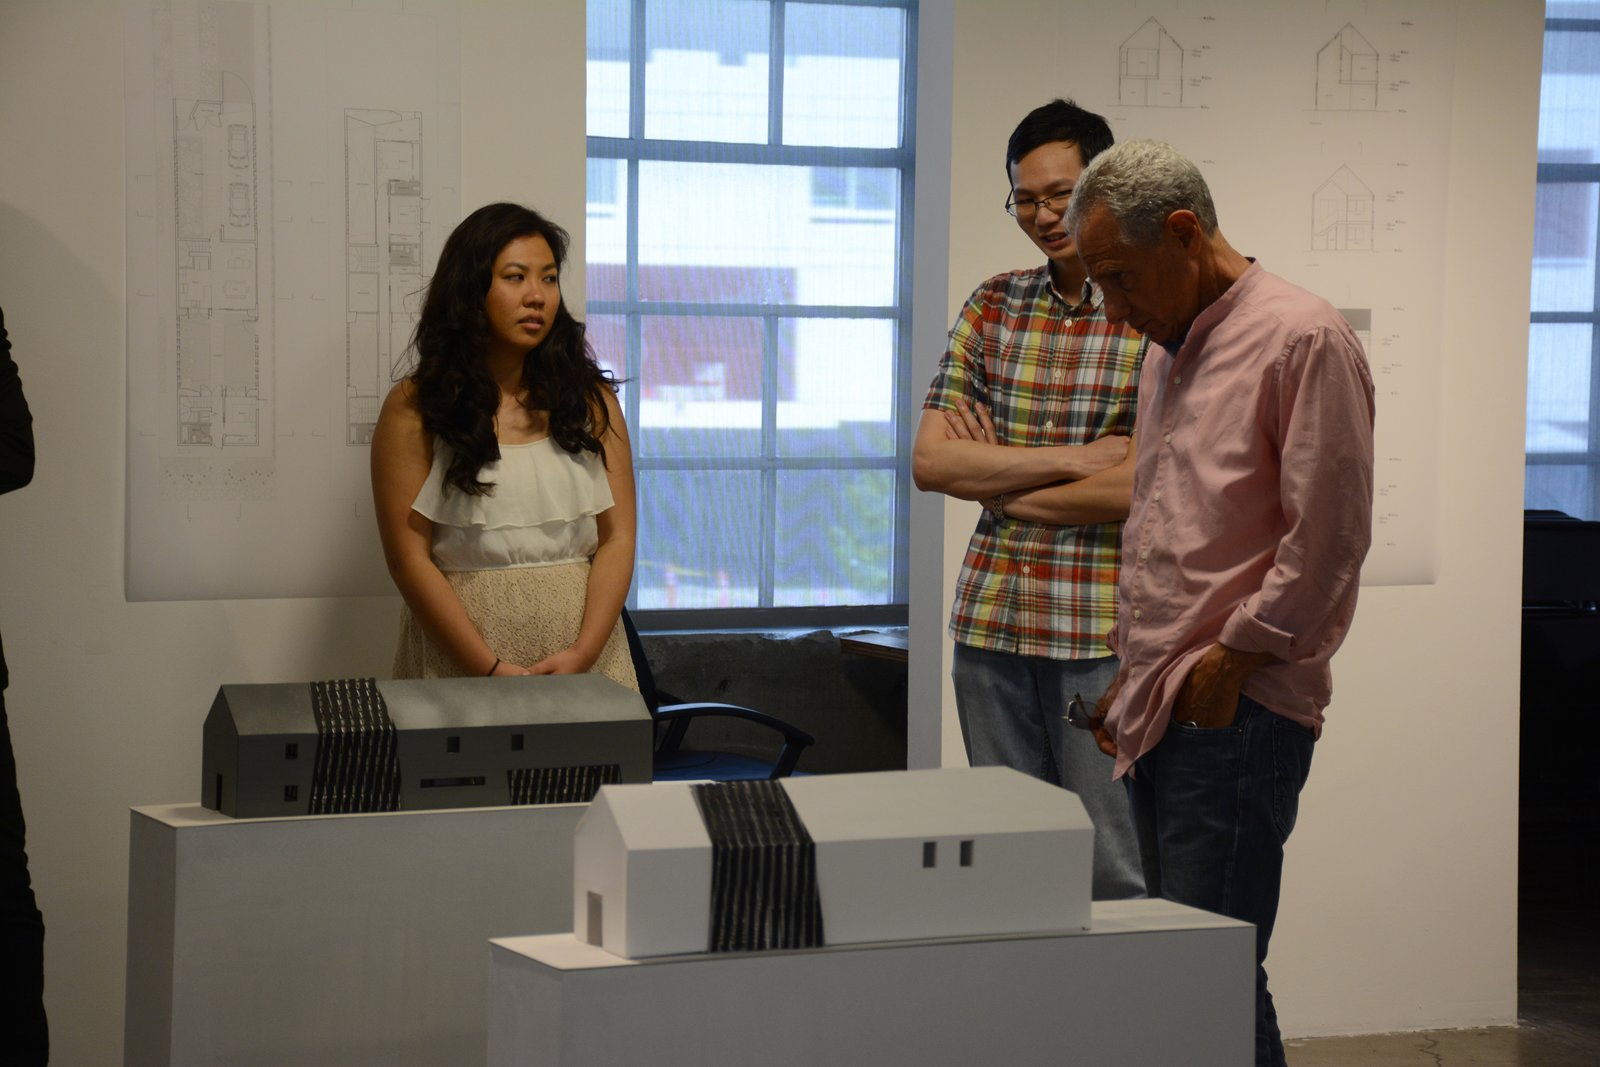 Models on exhibition during project's reception.